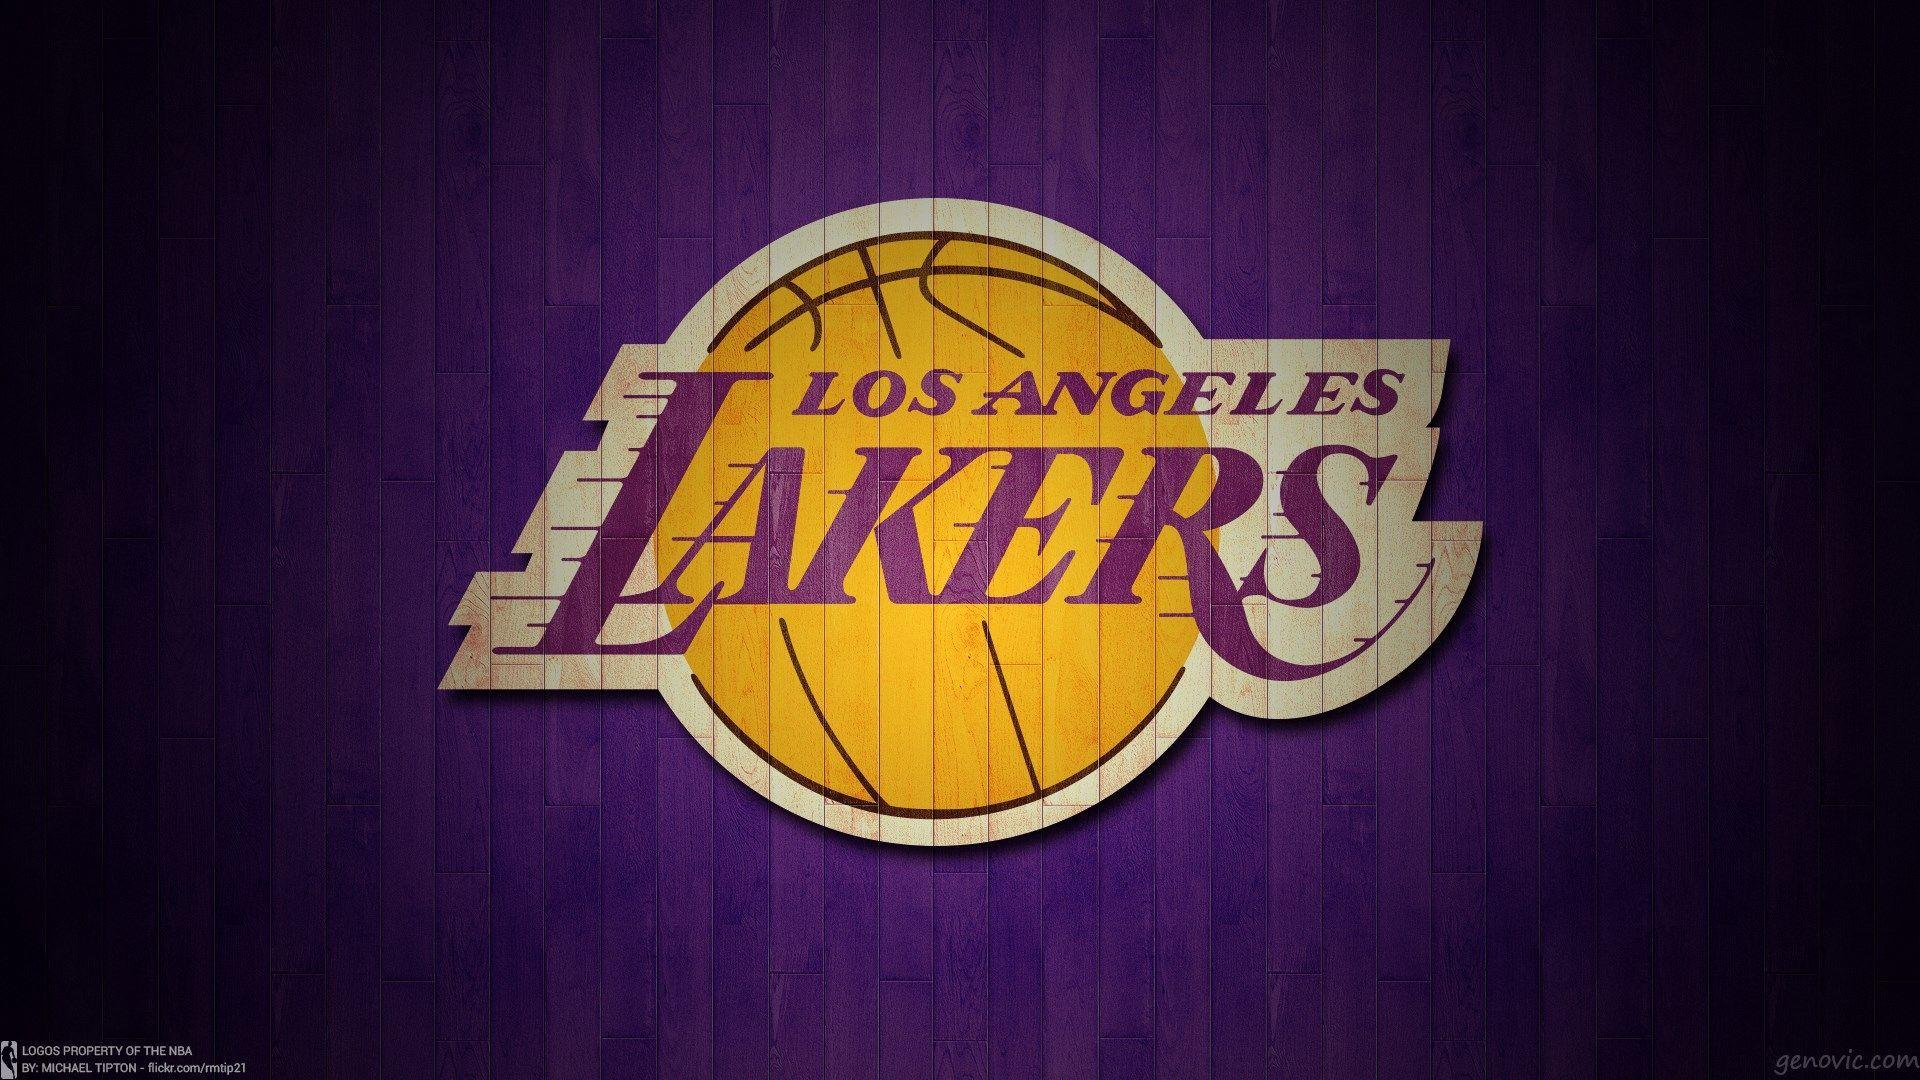 Los Angeles Lakers Wallpaper HD 26 25187 Images Wallpapers